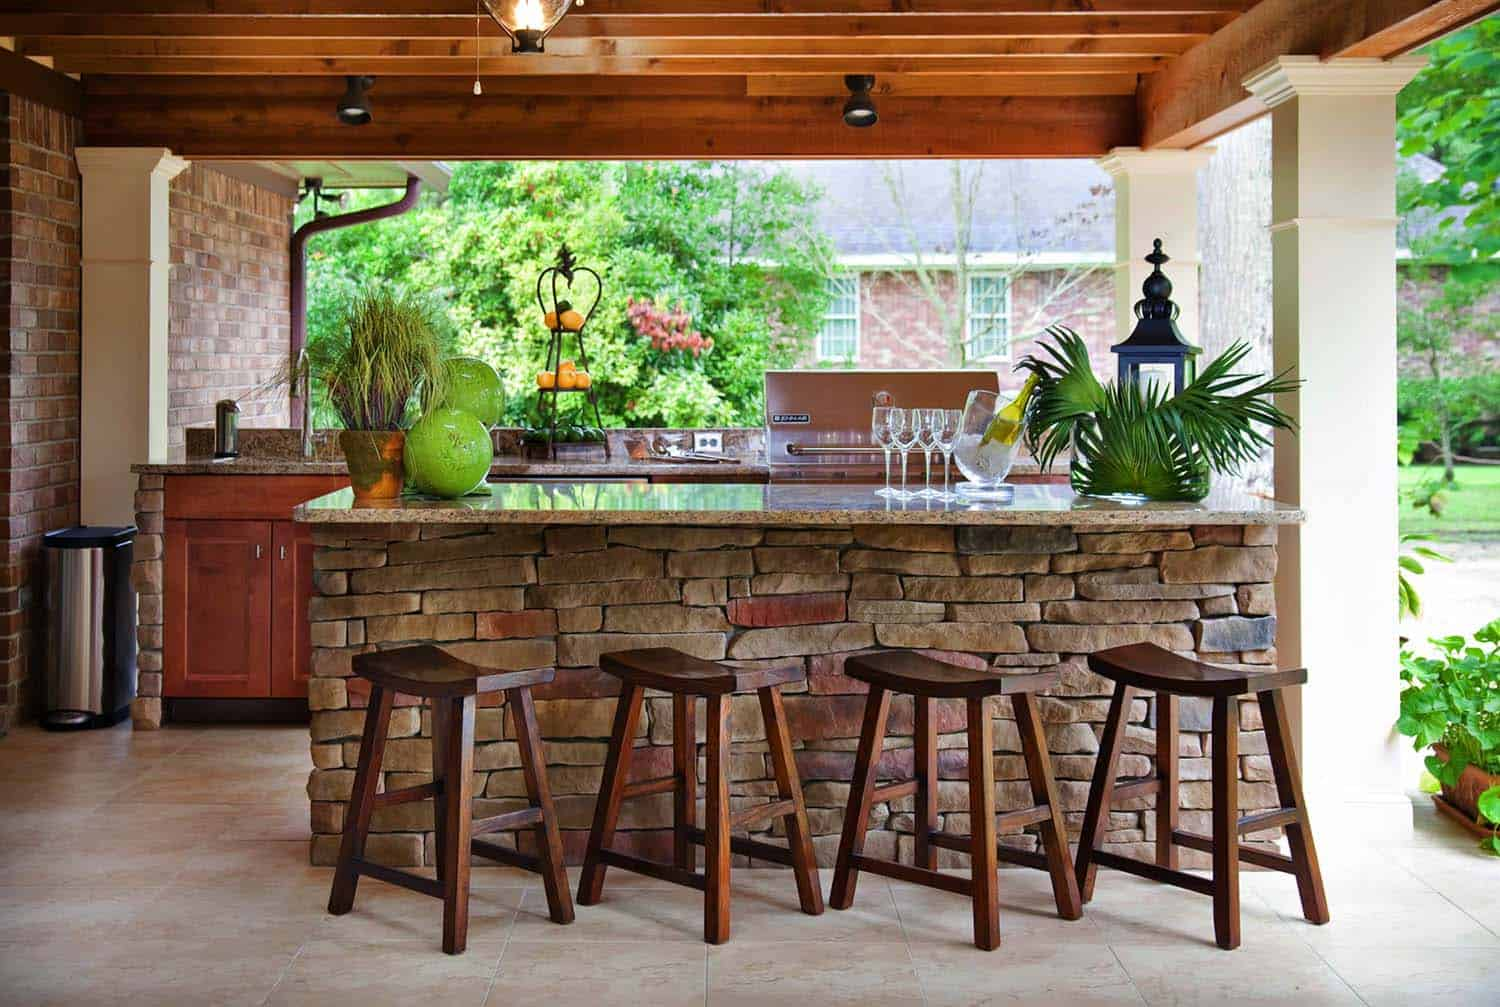 20 spectacular outdoor kitchens with bars for entertaining for Entertaining kitchen designs